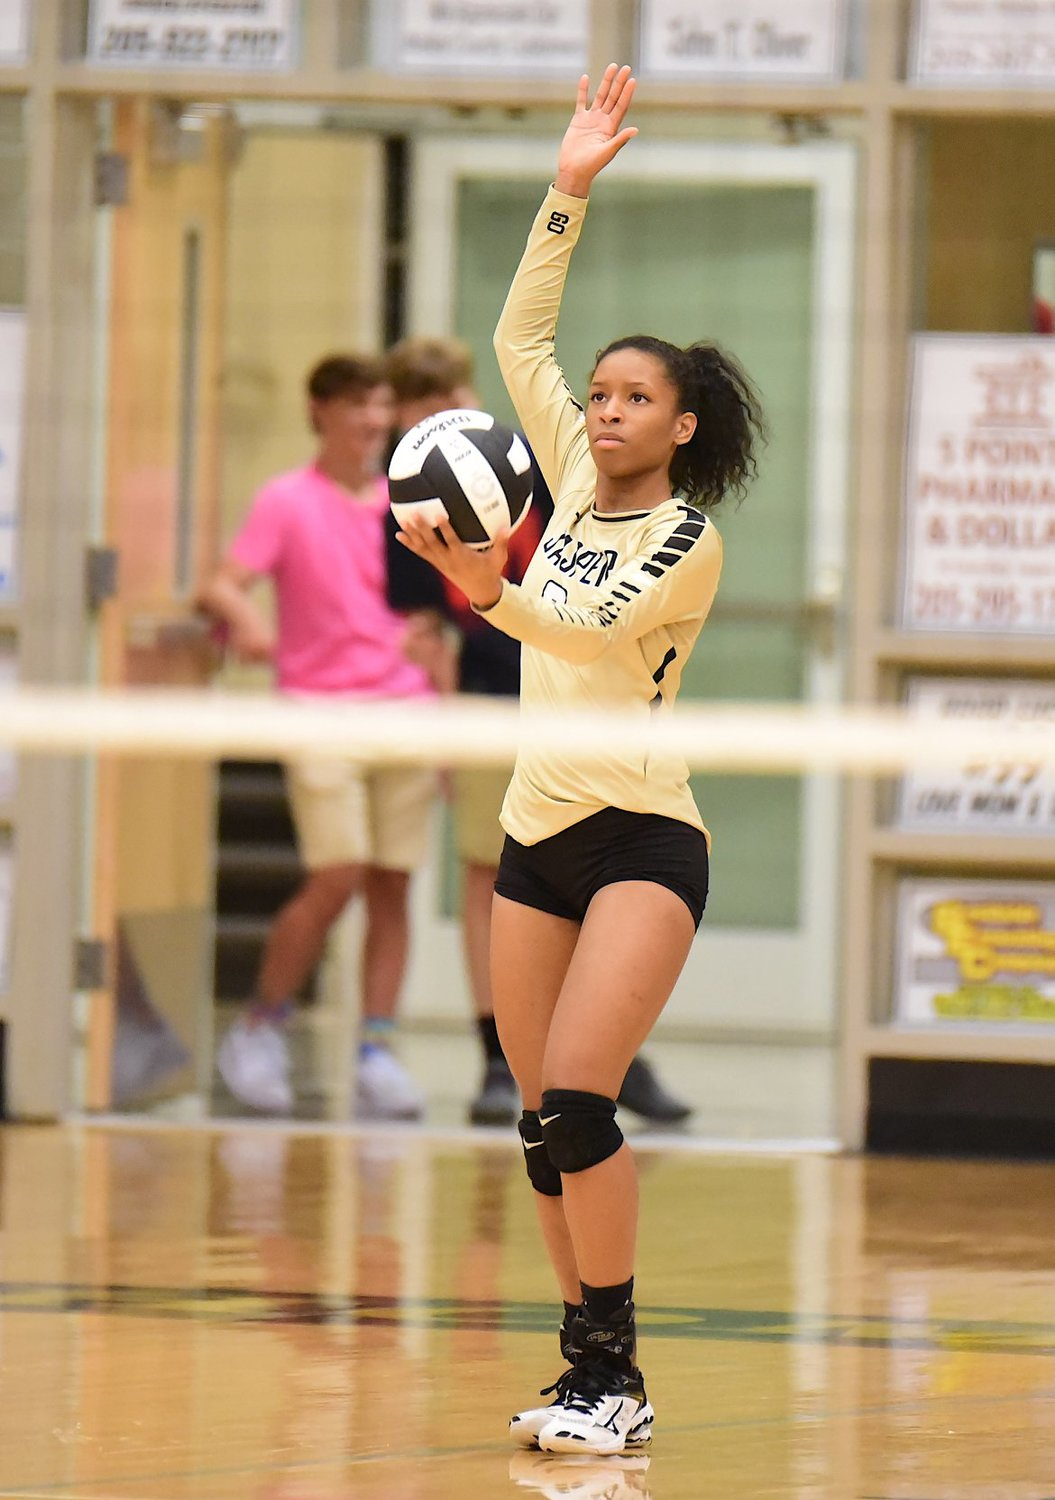 Kelsey Shelton was part of the back-to-back Class 5A state championship volleyball team at Jasper High School.